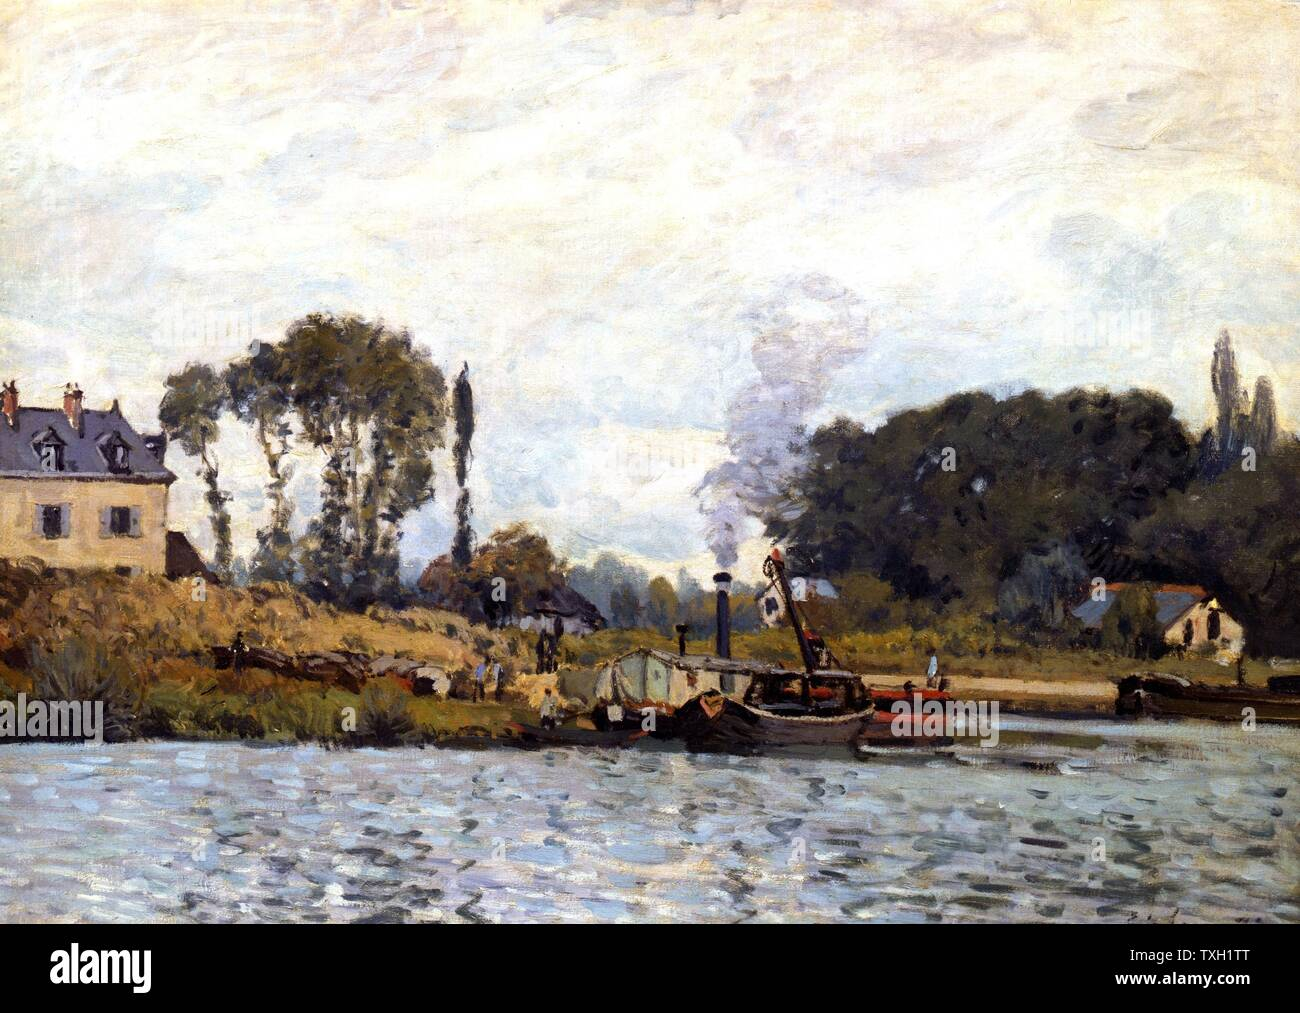 Alfred Sisley English school Boats at Bougival 1873 Oil on canvas (46 x 65 cm) Paris, musée d'Orsay - Stock Image